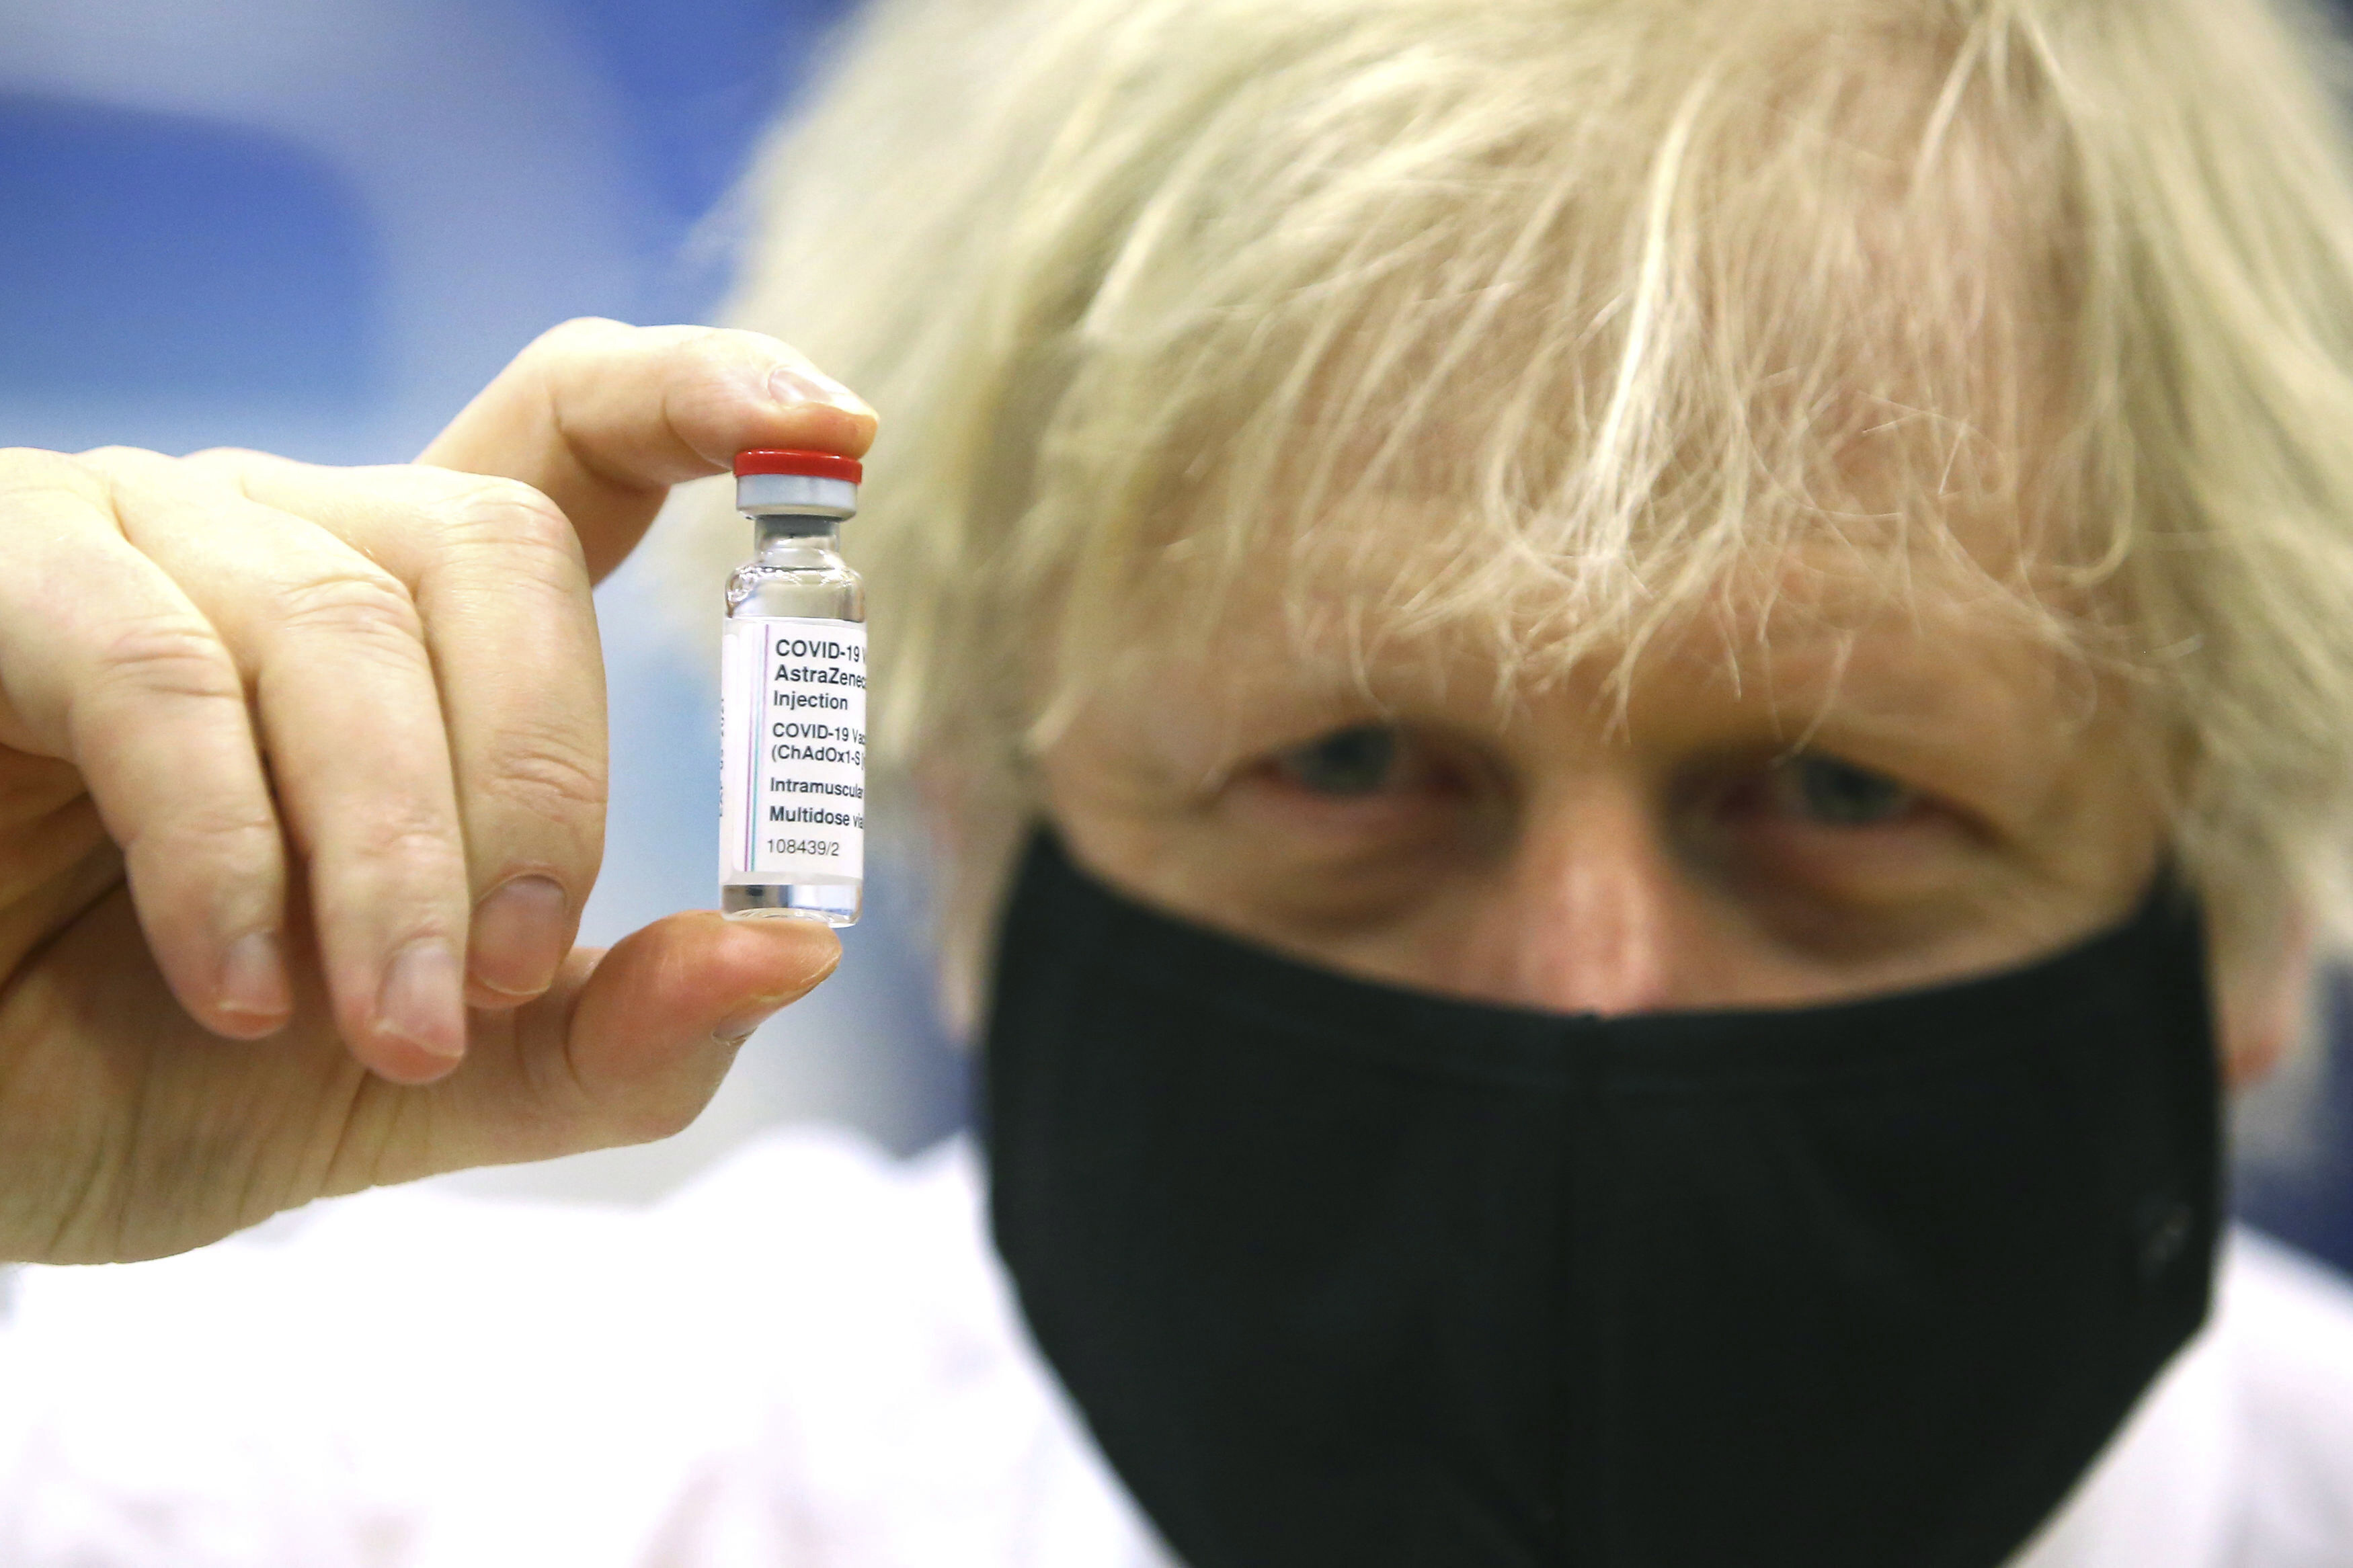 Britain's Prime Minister Boris Johnson holds a vial of the Oxford/Astra Zeneca Covid-19 vaccine at a vaccination centre in Cwmbran, south Wales, on Feb. 17, 2021.                       (Geoff Caddick/Pool via AP, File)